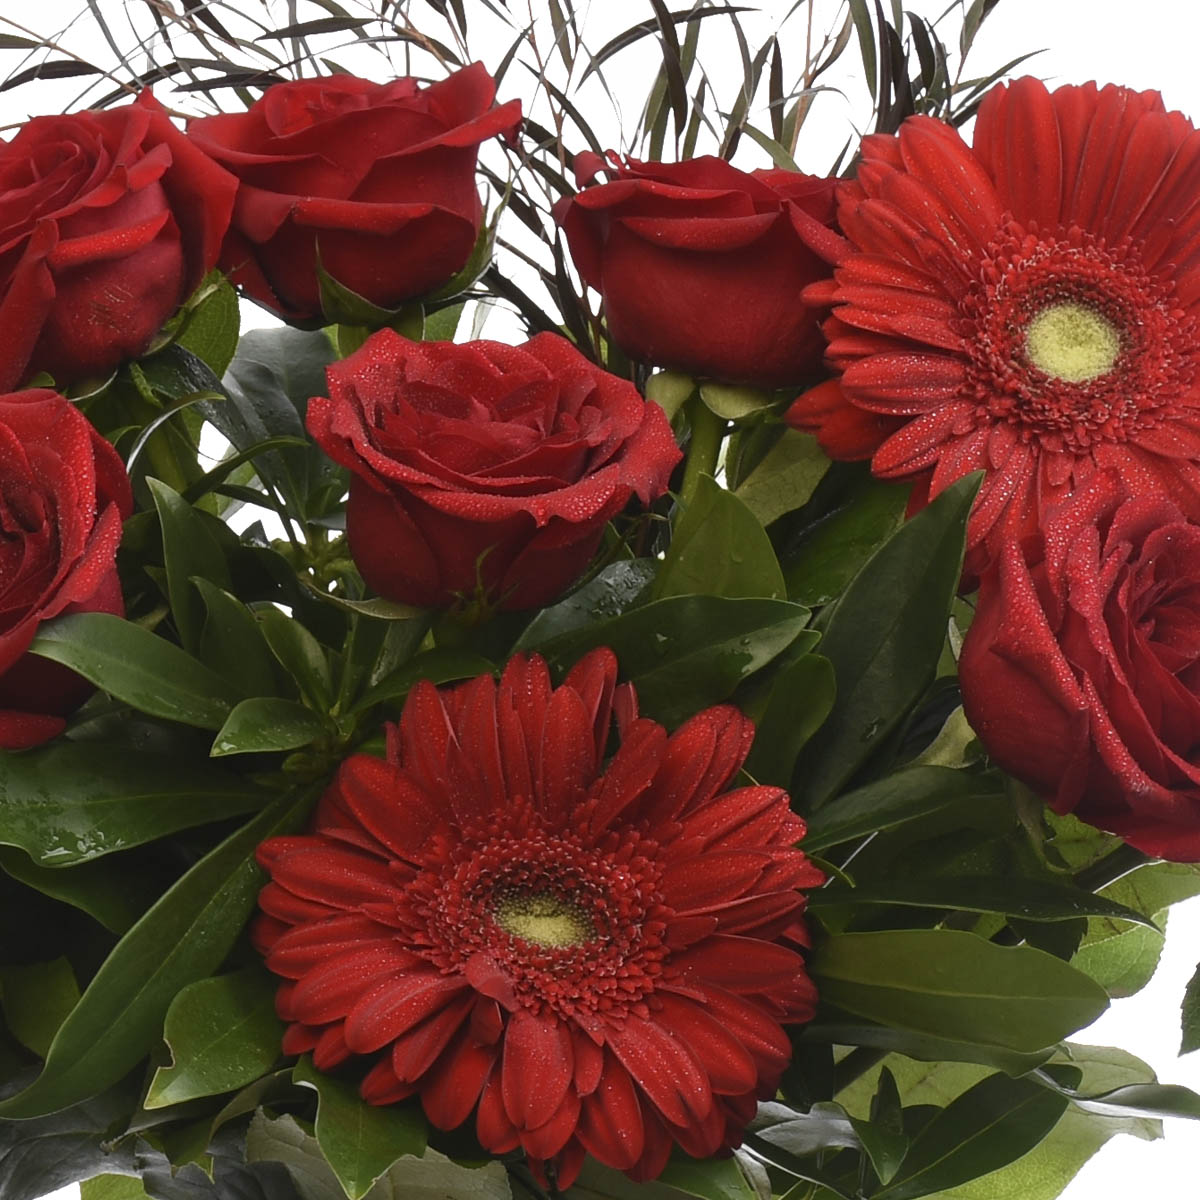 Red roses and gerberas. Adele Rae Burnaby, Brisith Columbia